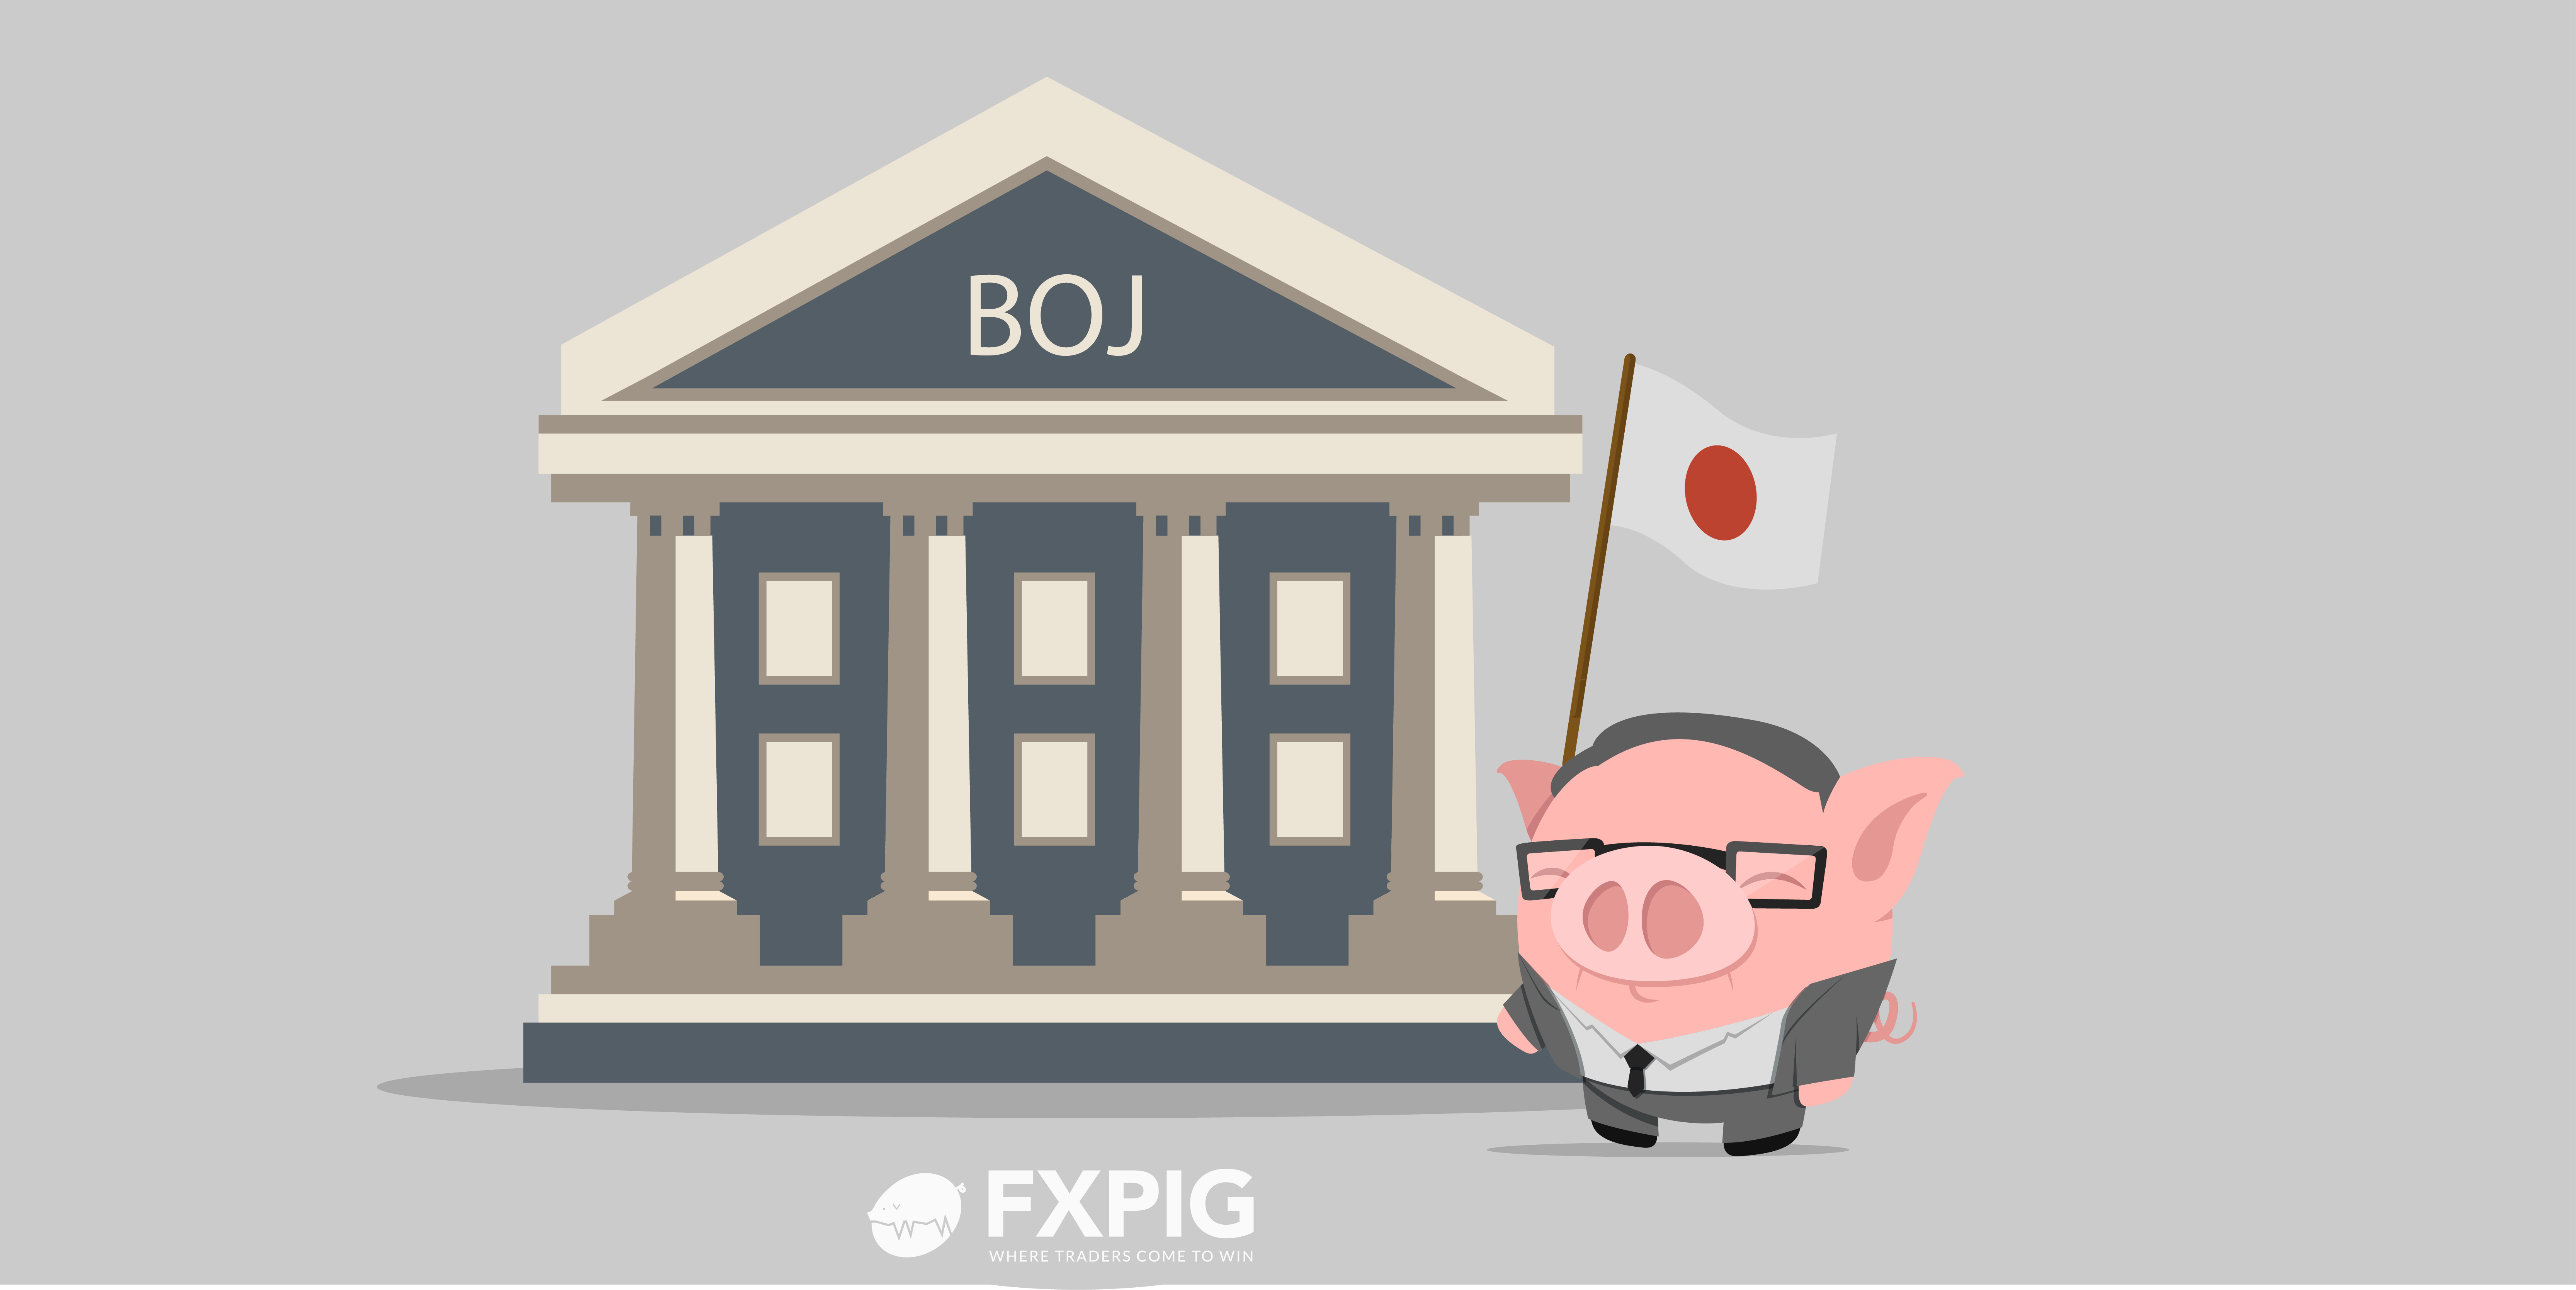 BoJ_to-move-forward_Forex_FXPIG